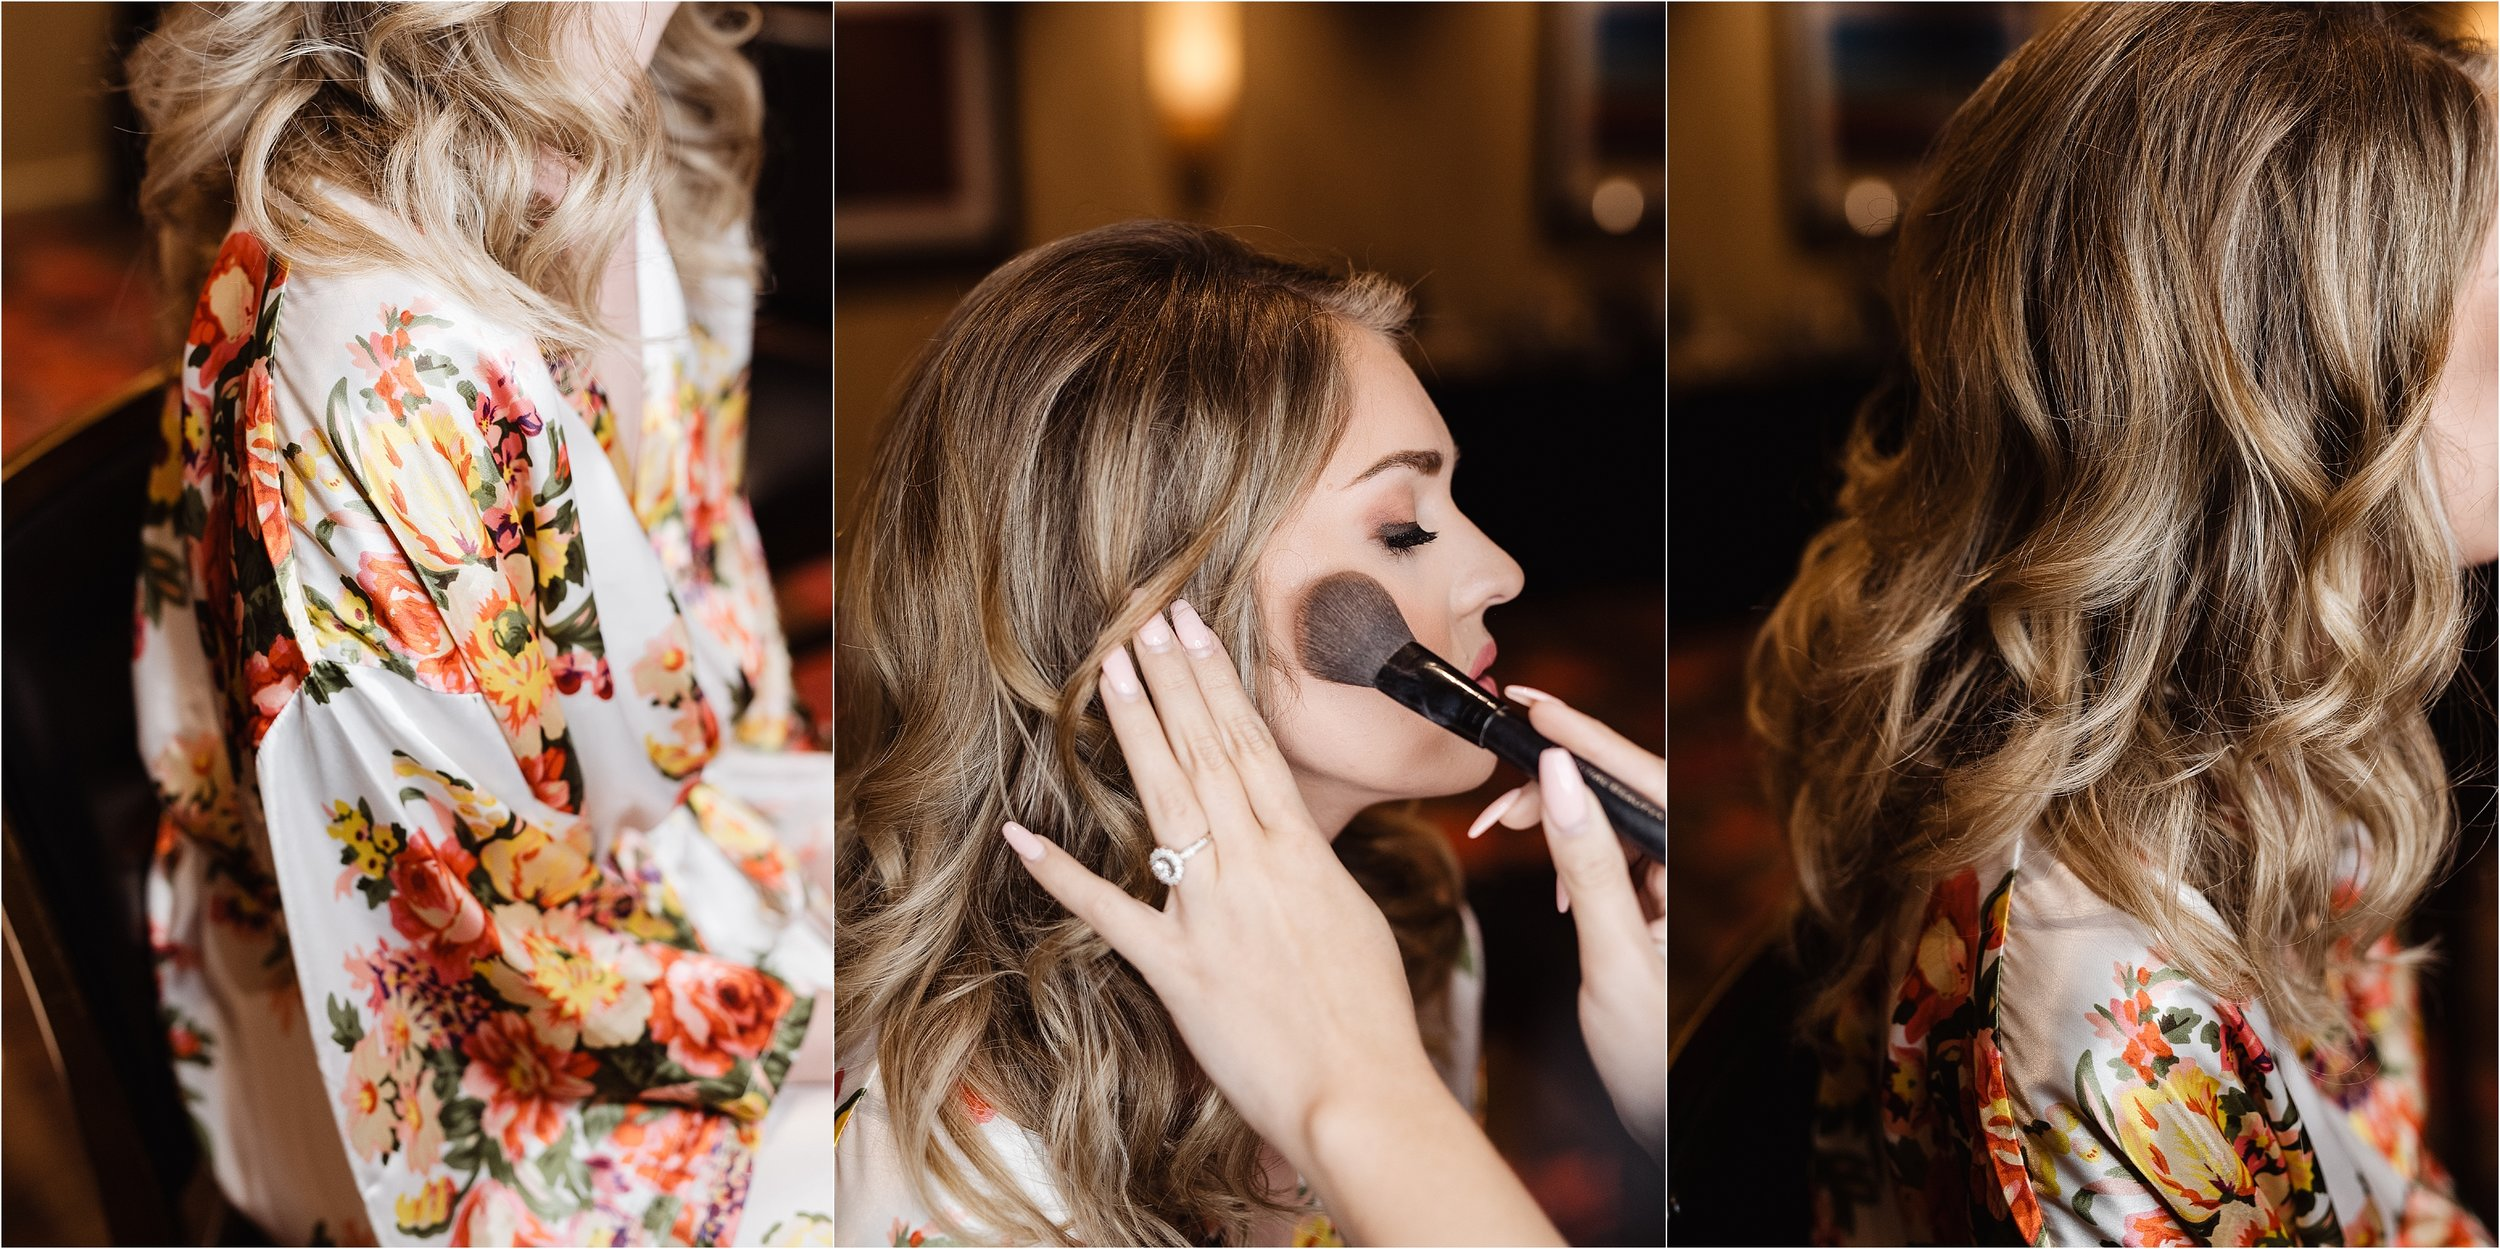 oklahoma wedding photographer hair makeup robes matching outfits bridal party getting ready bridesmaids maid of honor dressing buttons lace mother of bride hair curls